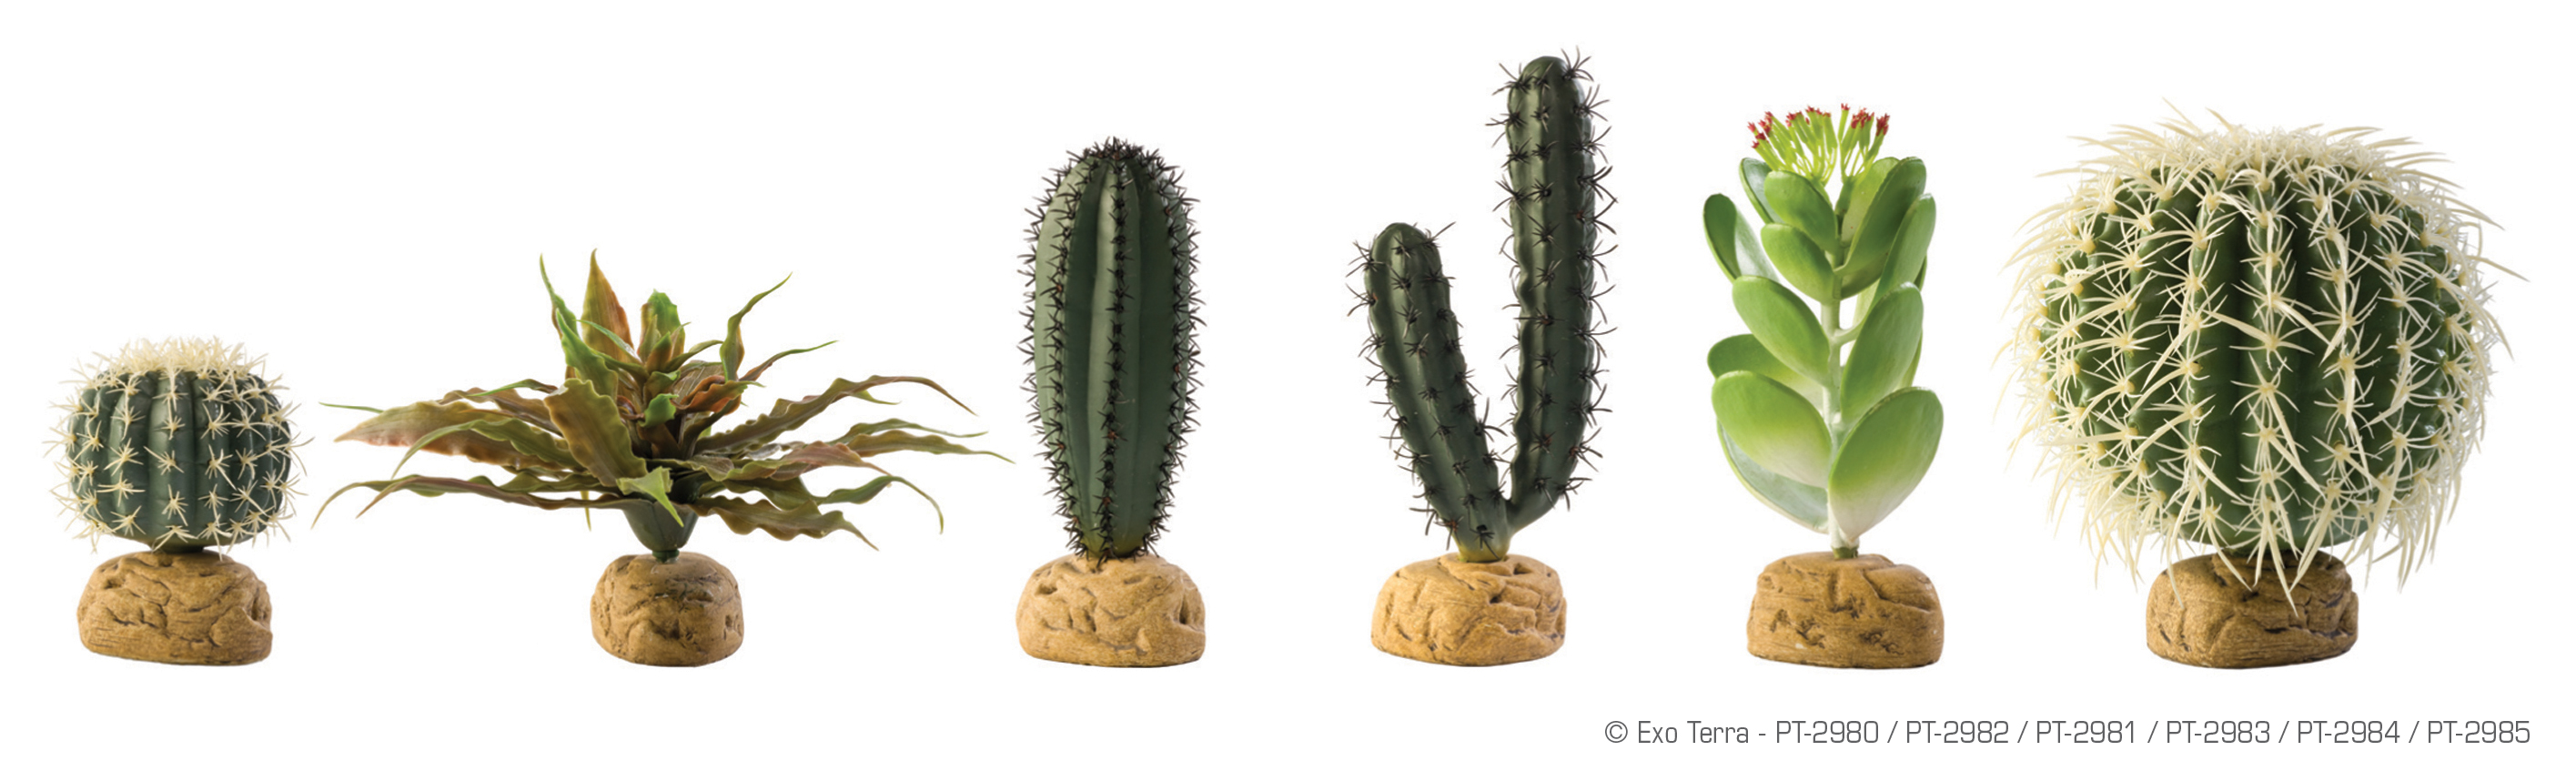 Ground_Desert_Plants_Family.jpg